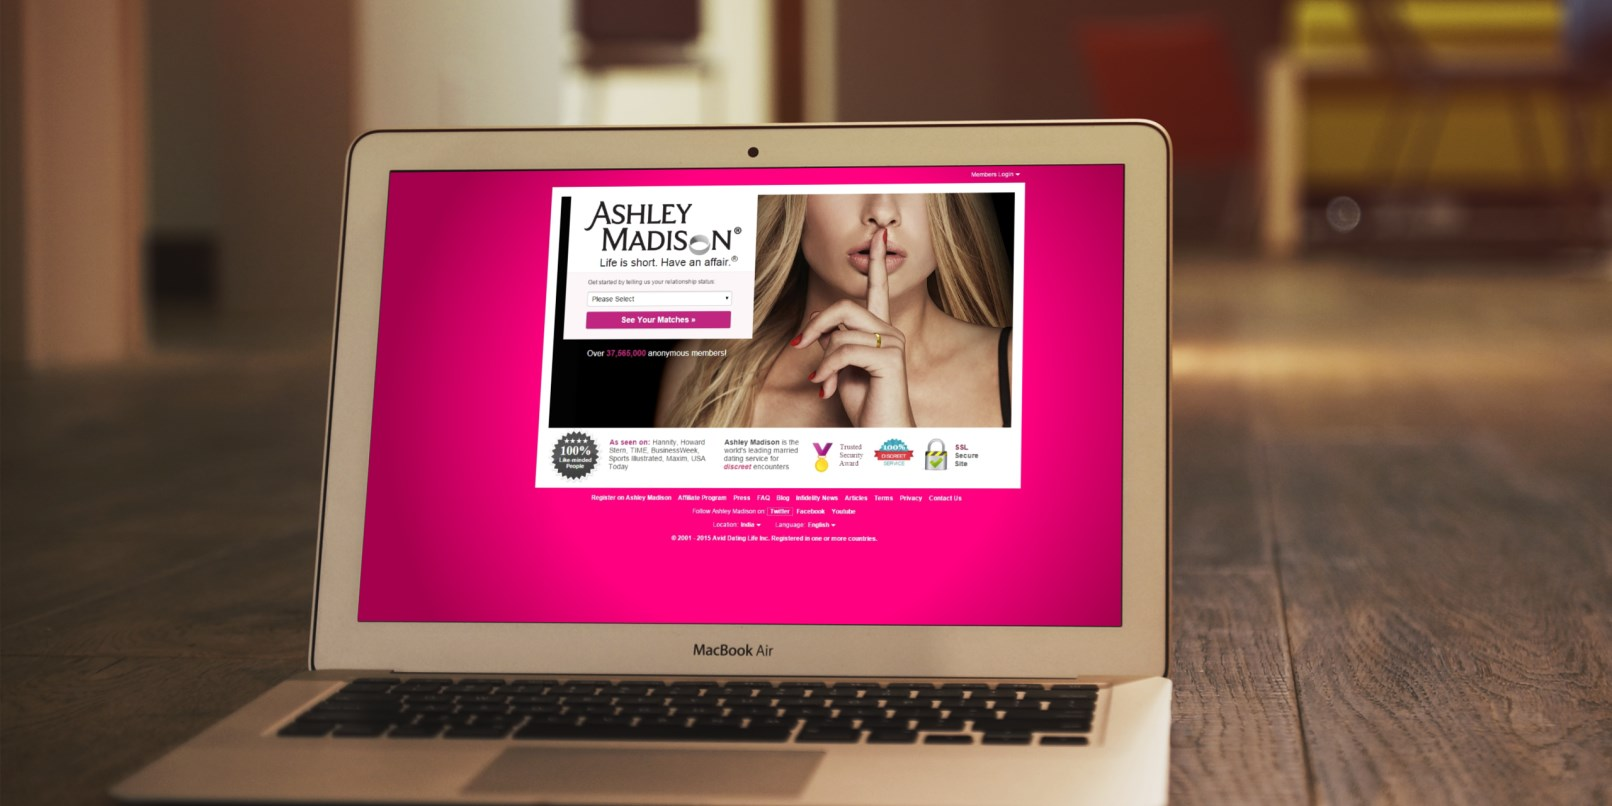 Ashley Madison: Hackers Release Client Data